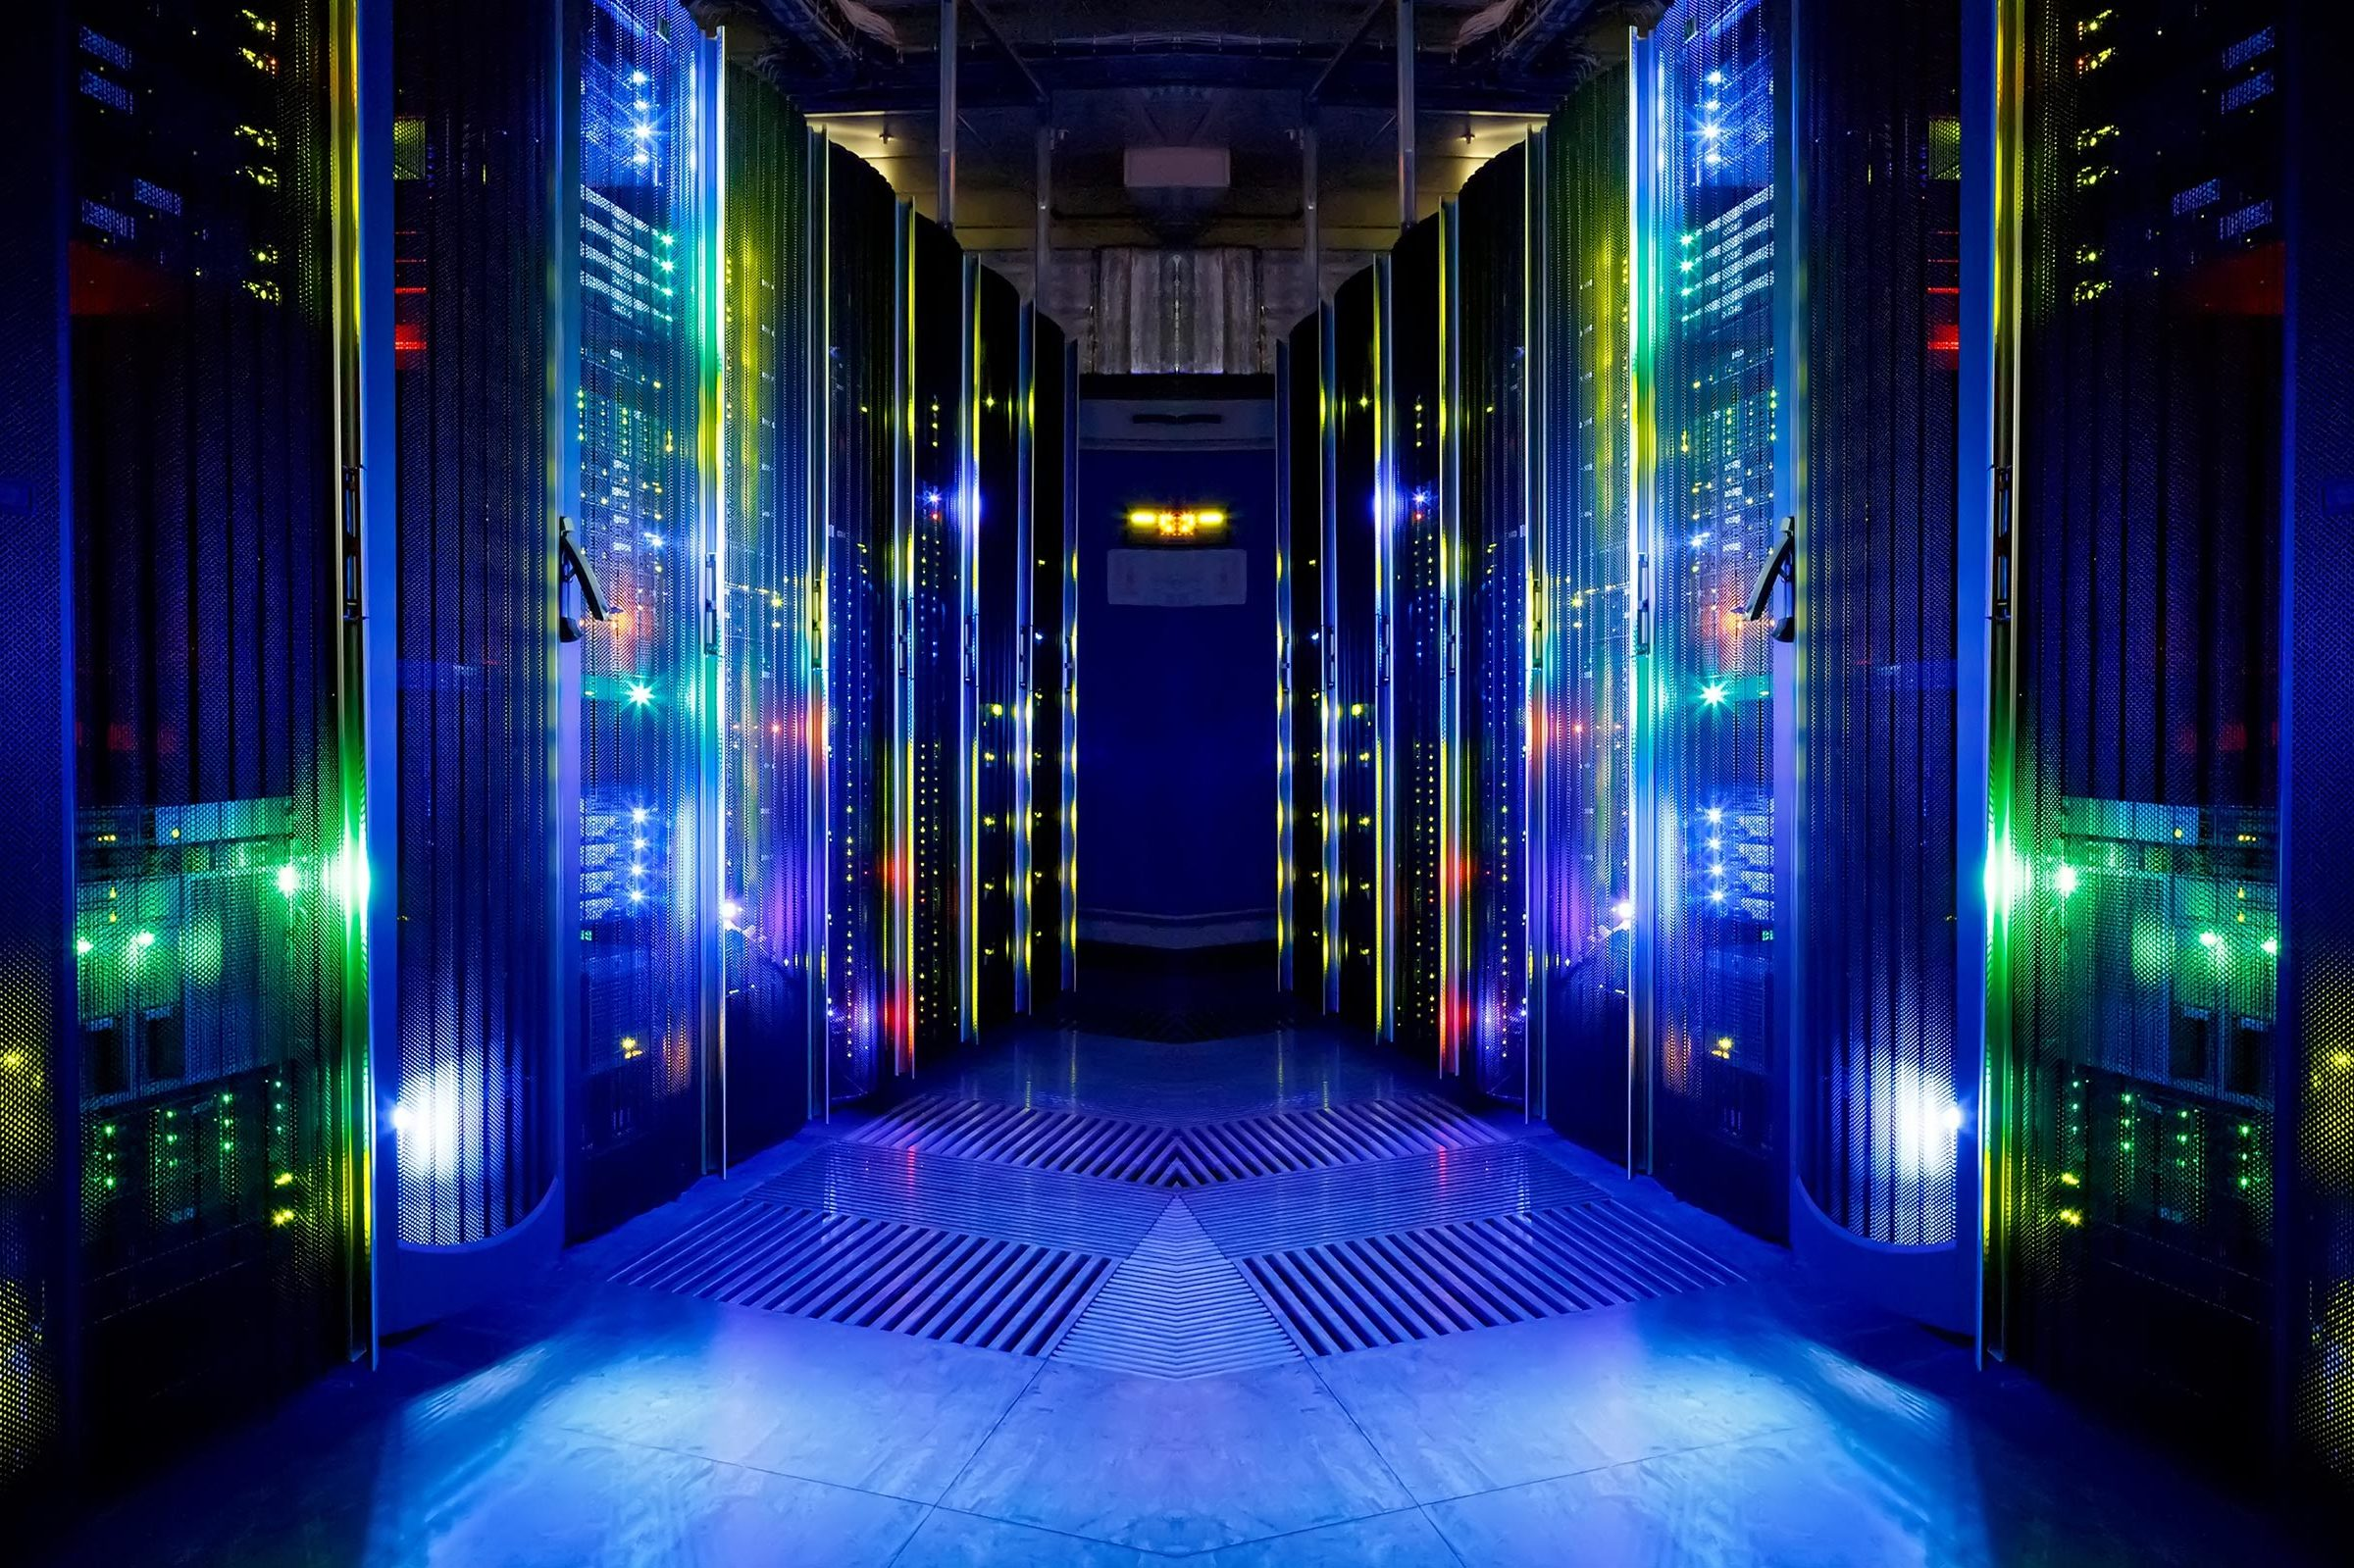 A server room inside a data center.